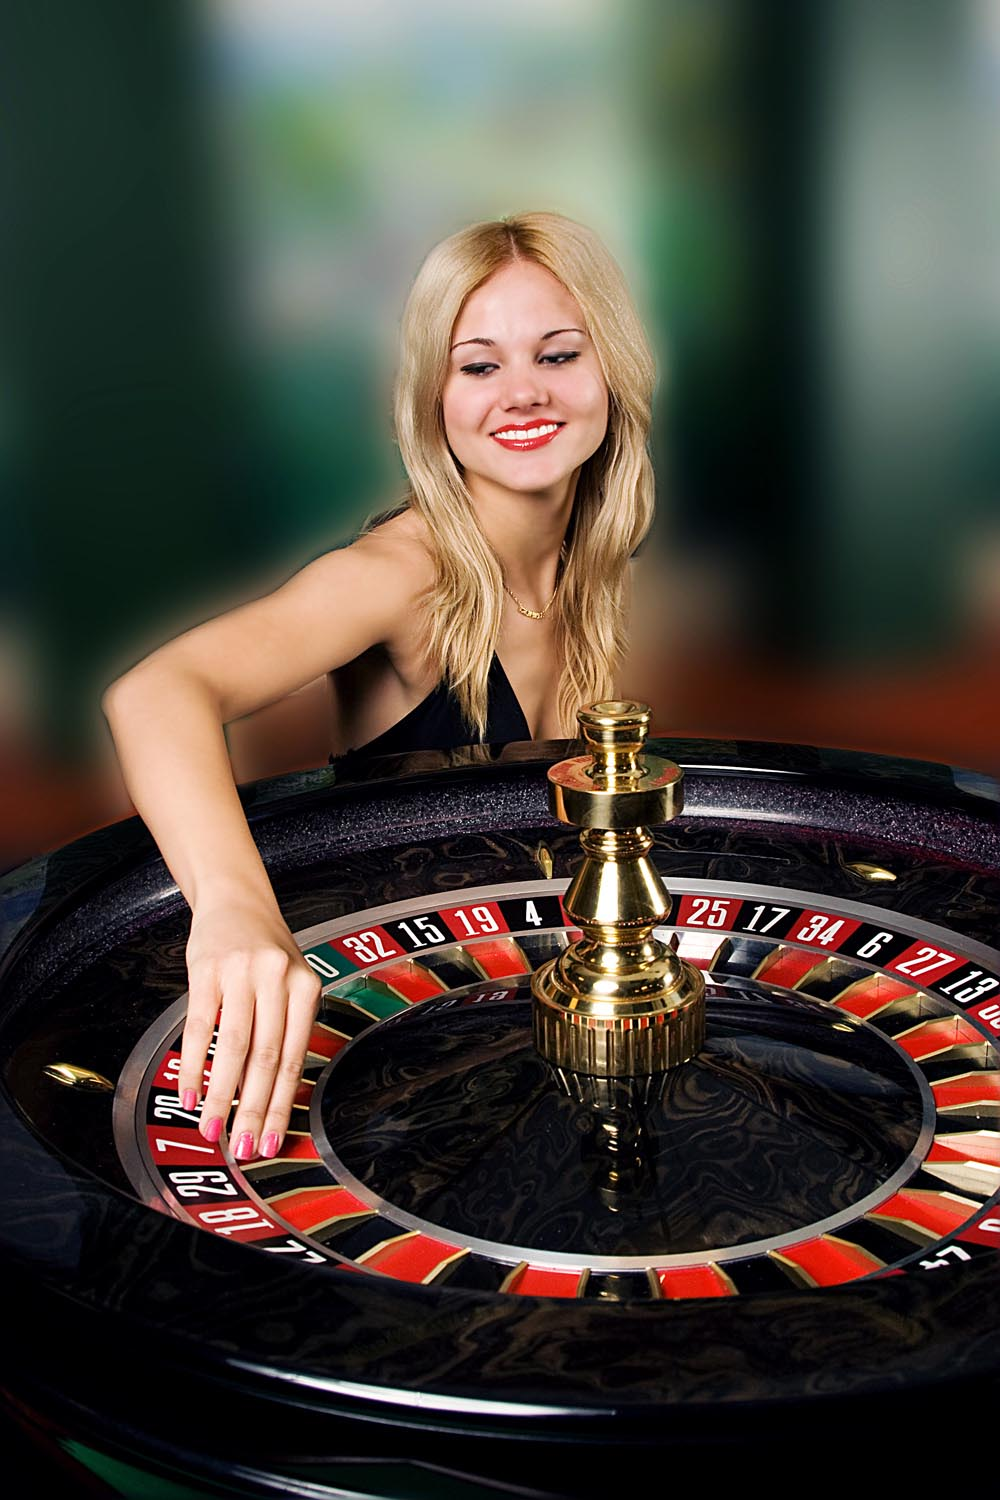 casino online betting sizzlig hot